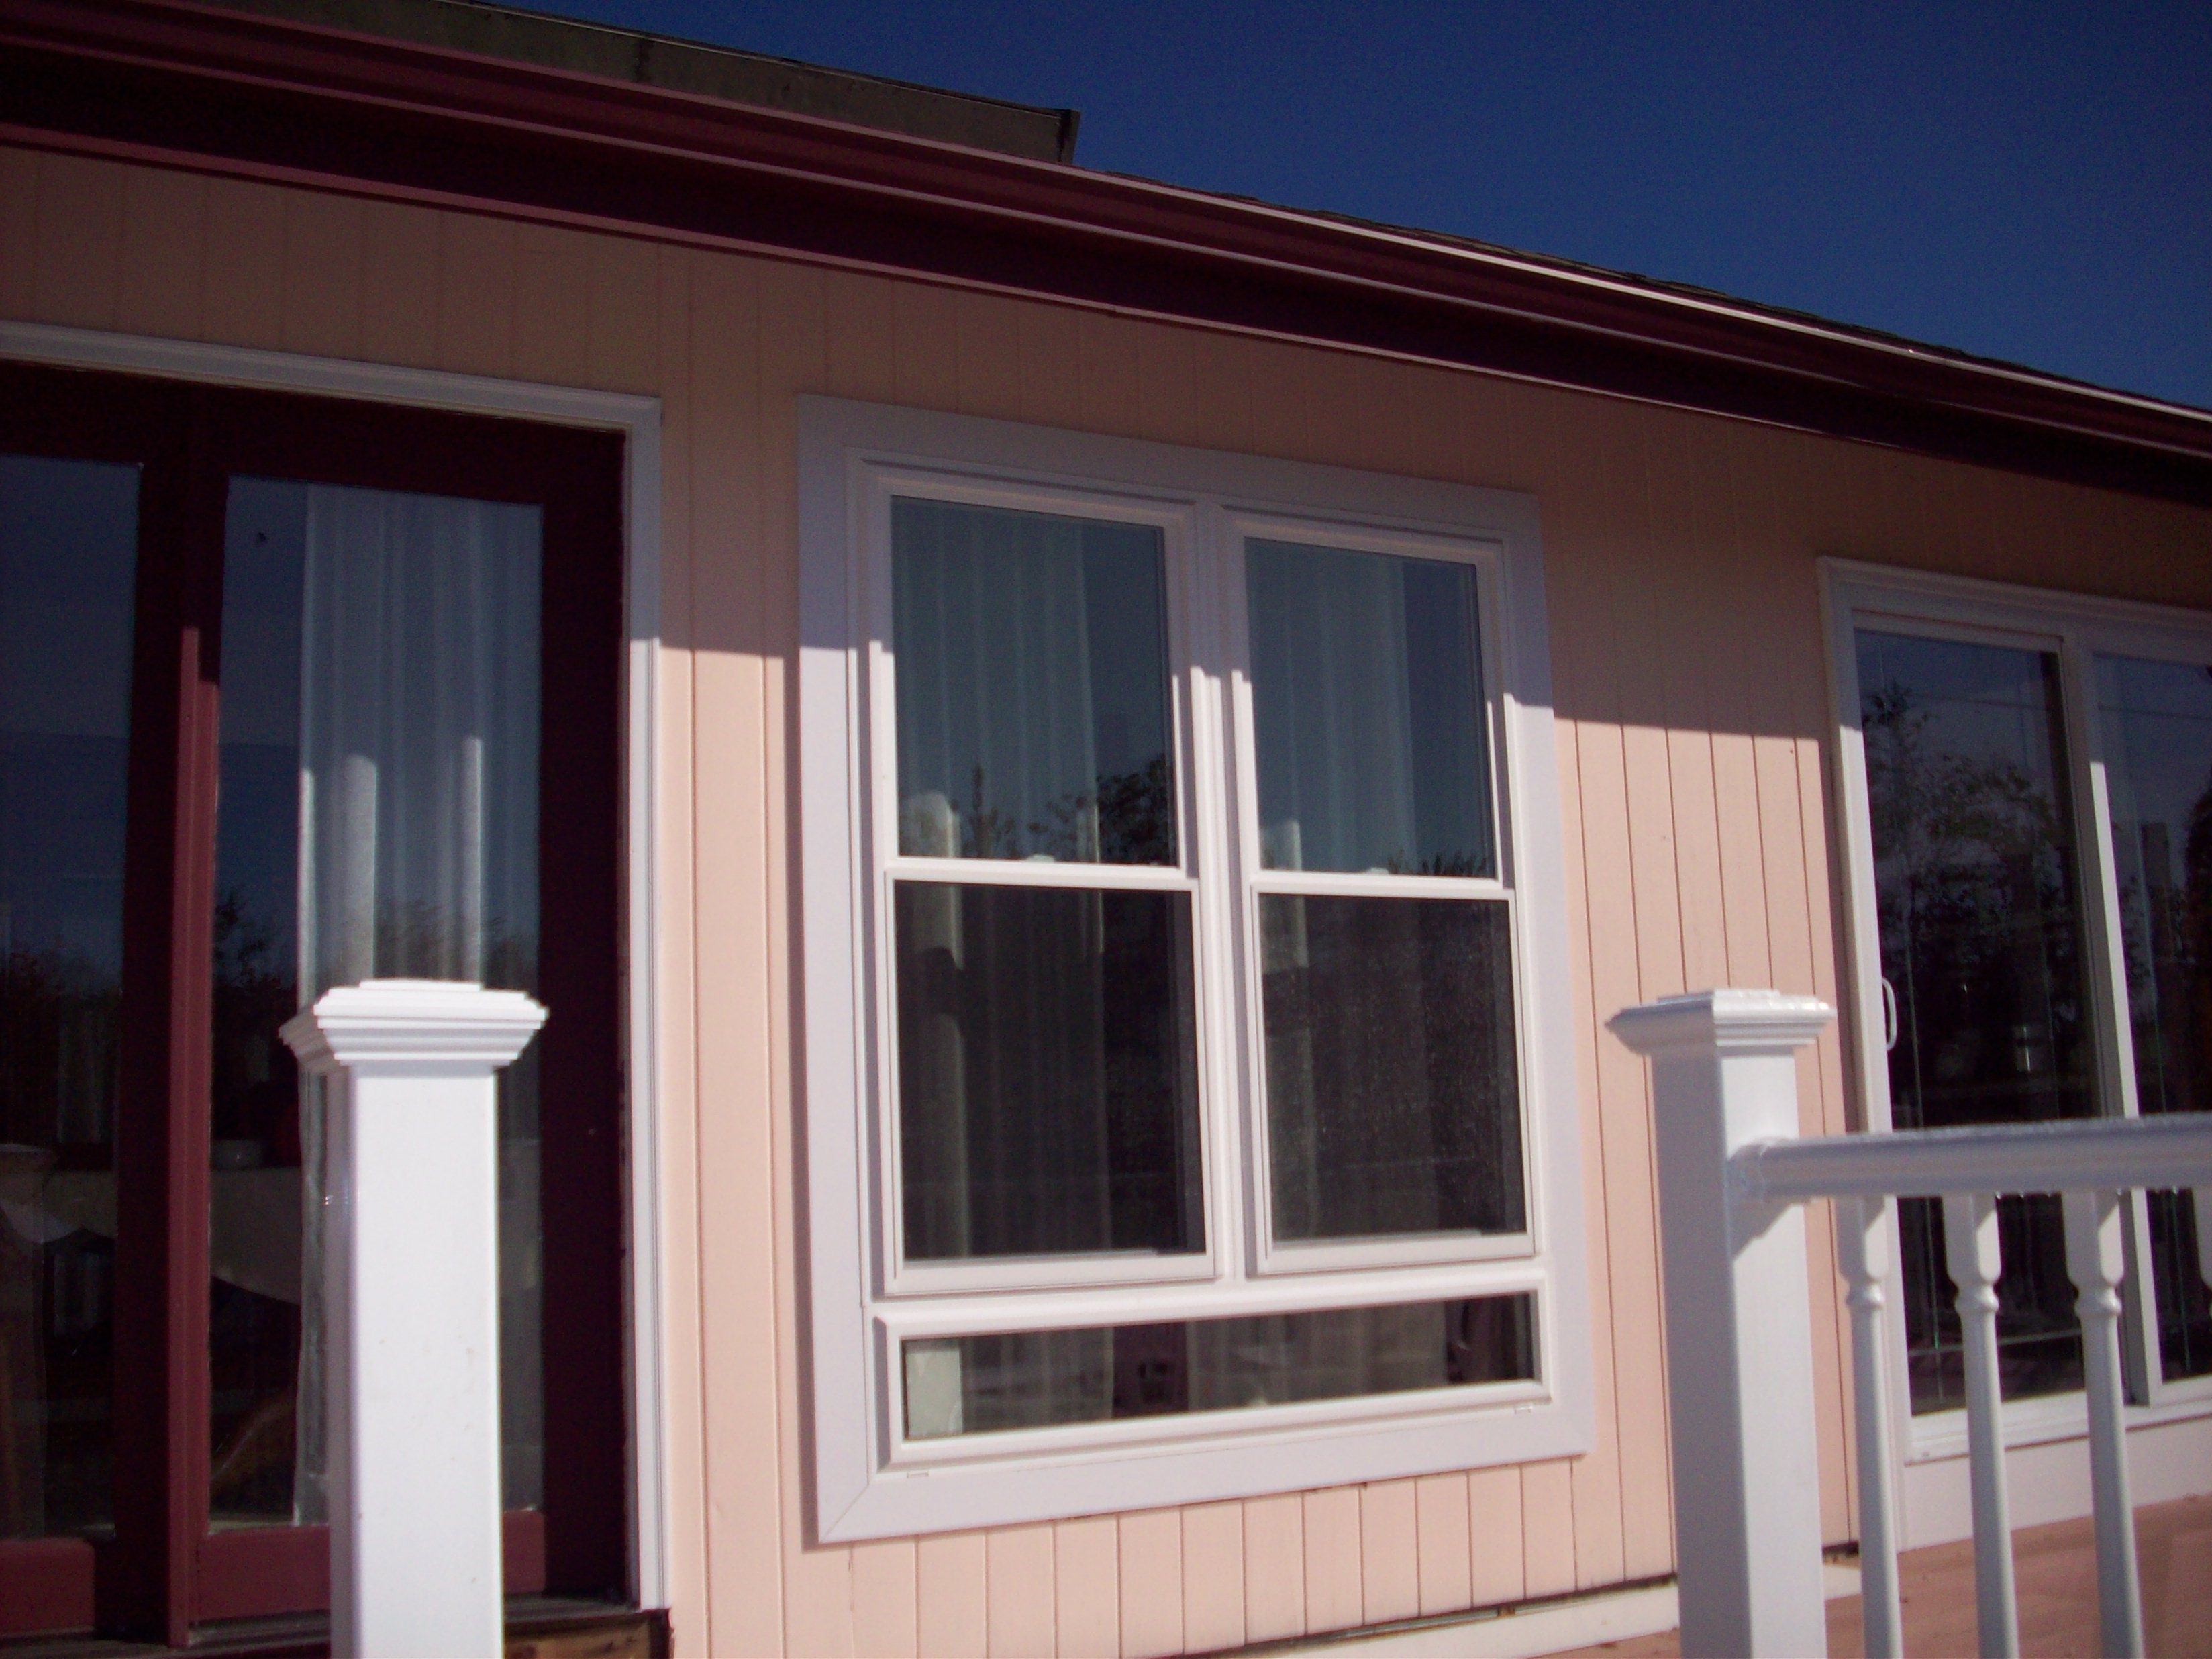 Richard gagnon author at vinyl window manufacturer for Residential window manufacturers